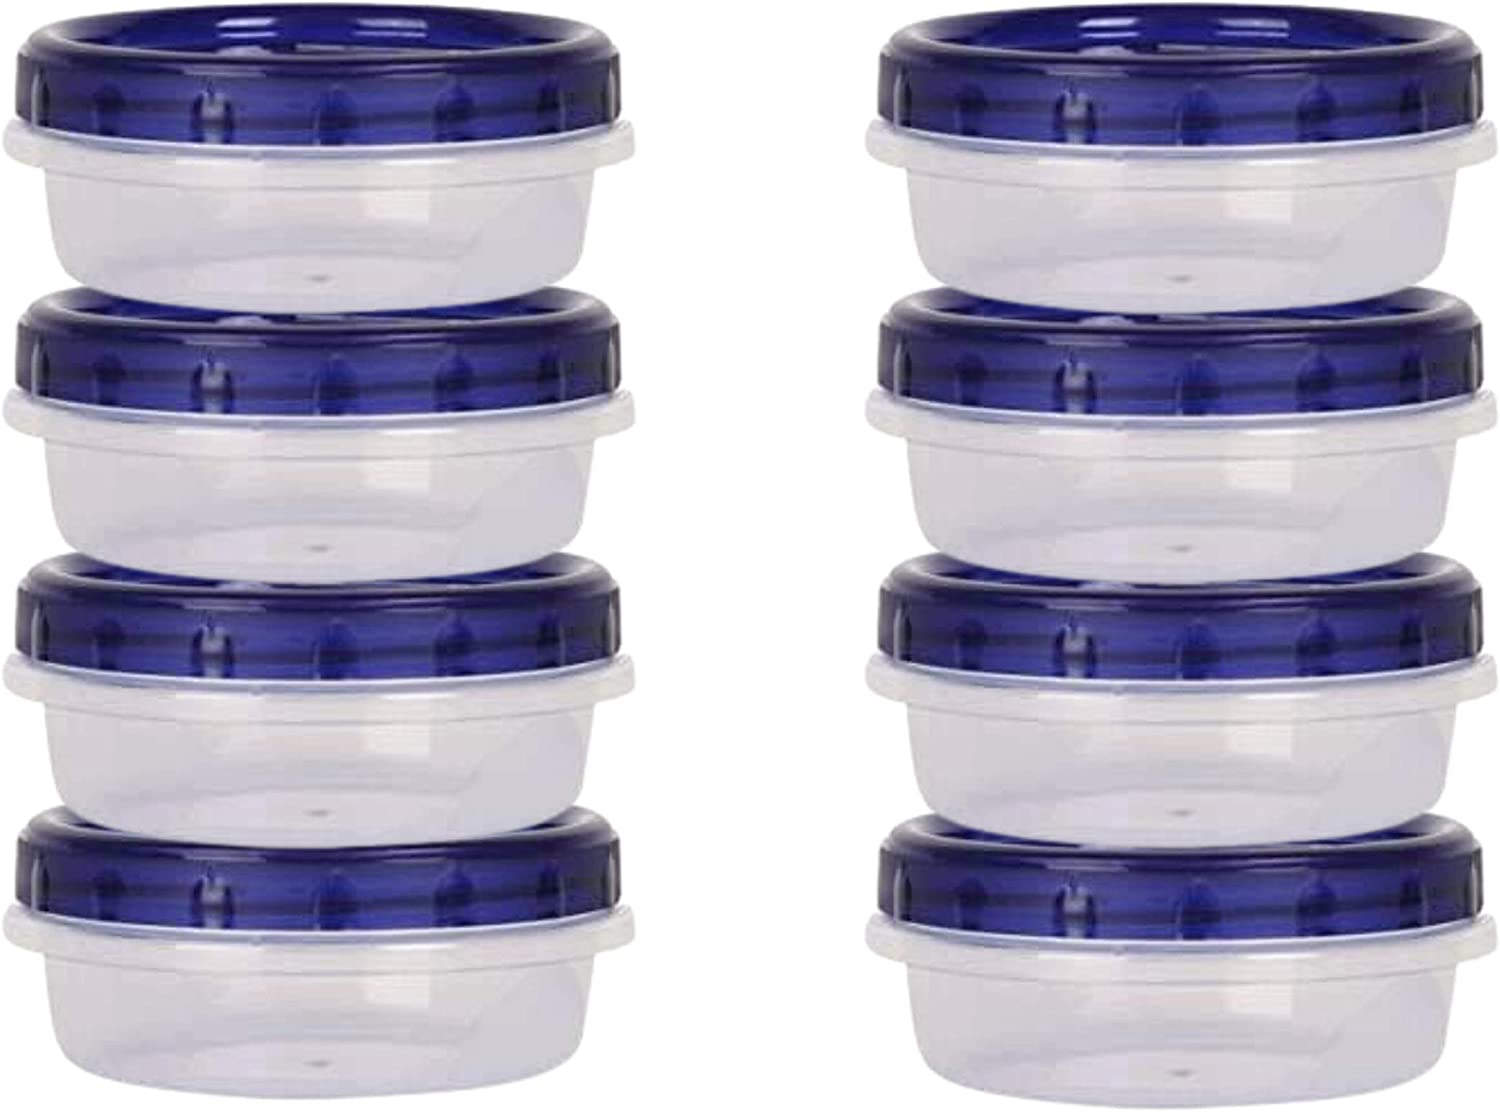 HomeyGear 8-Pack Twist Top Food Storage Containers | Leak-Proof, Airtight Soup Storage Canisters with Screw & Seal Lids | BPA-Free, Stackable, Reusable Kitchen Essentials | 8-Ounce